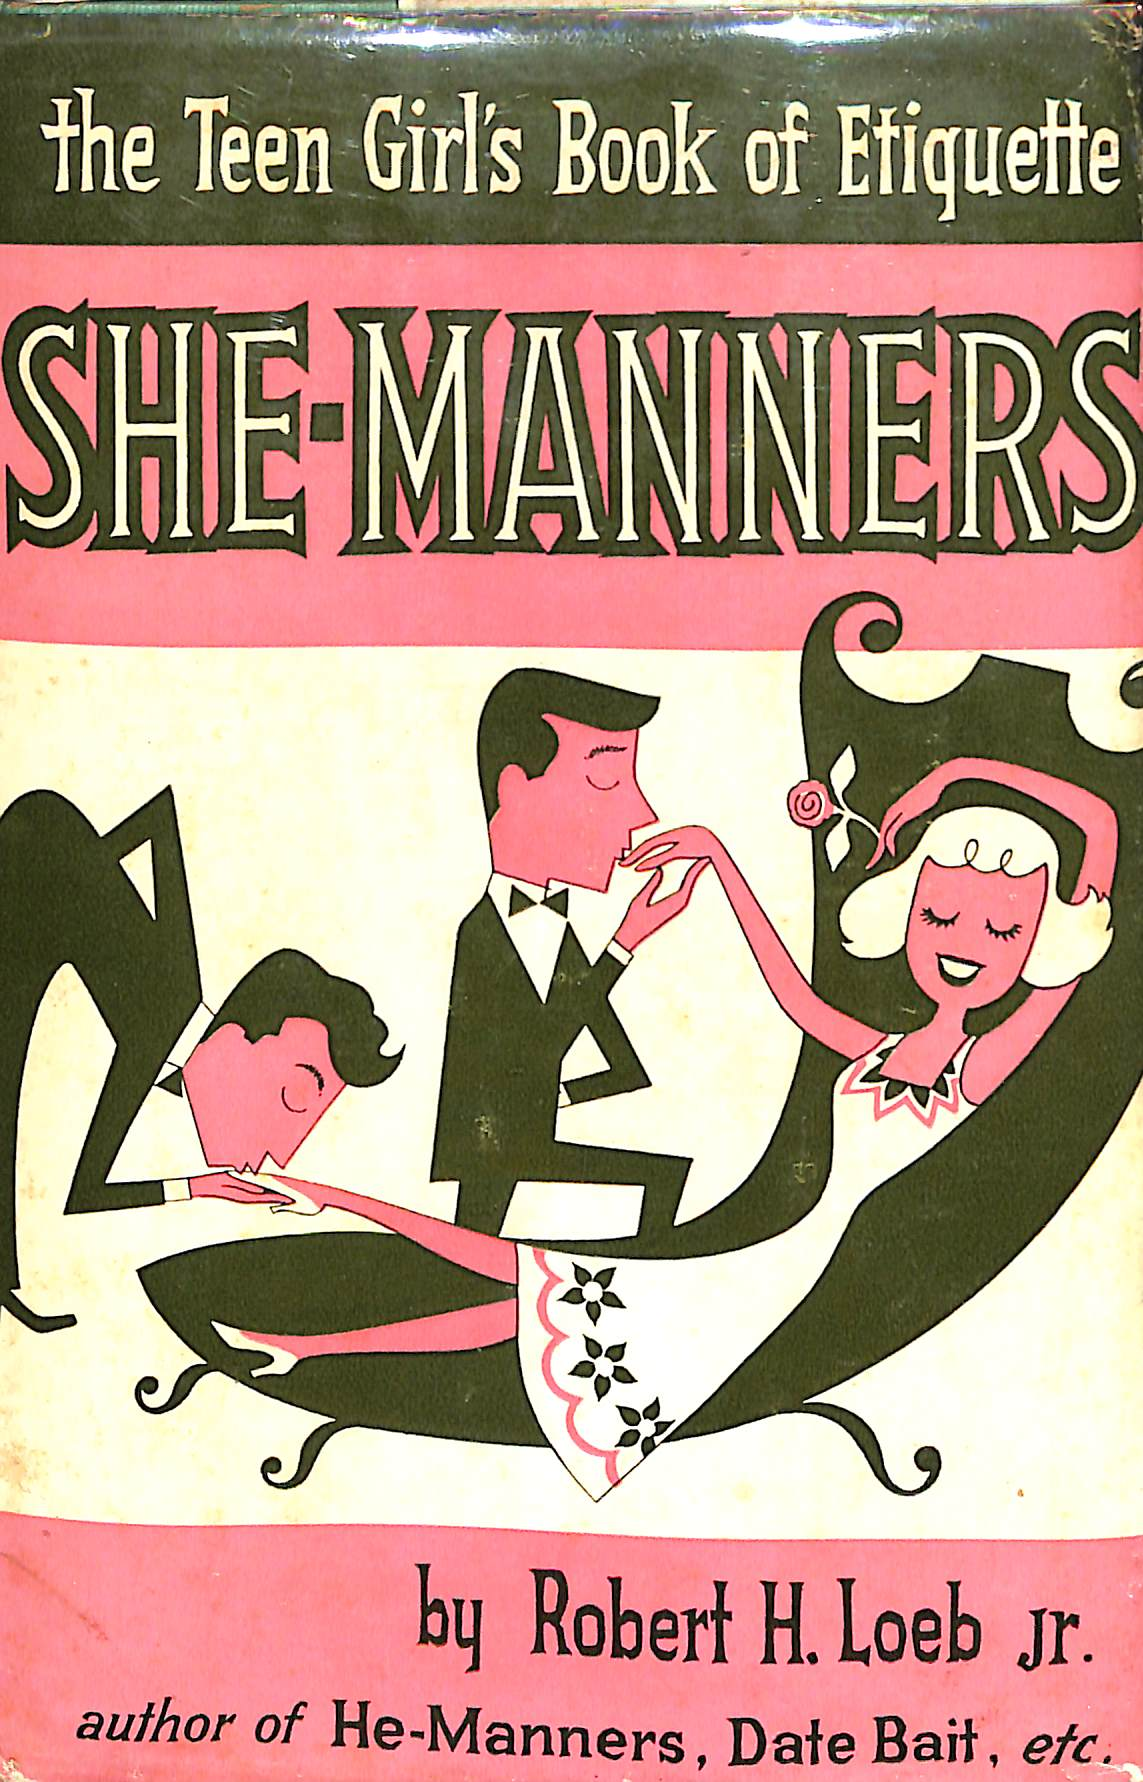 'She-Manners: The Teen Girl's Book of Etiquette' 1965